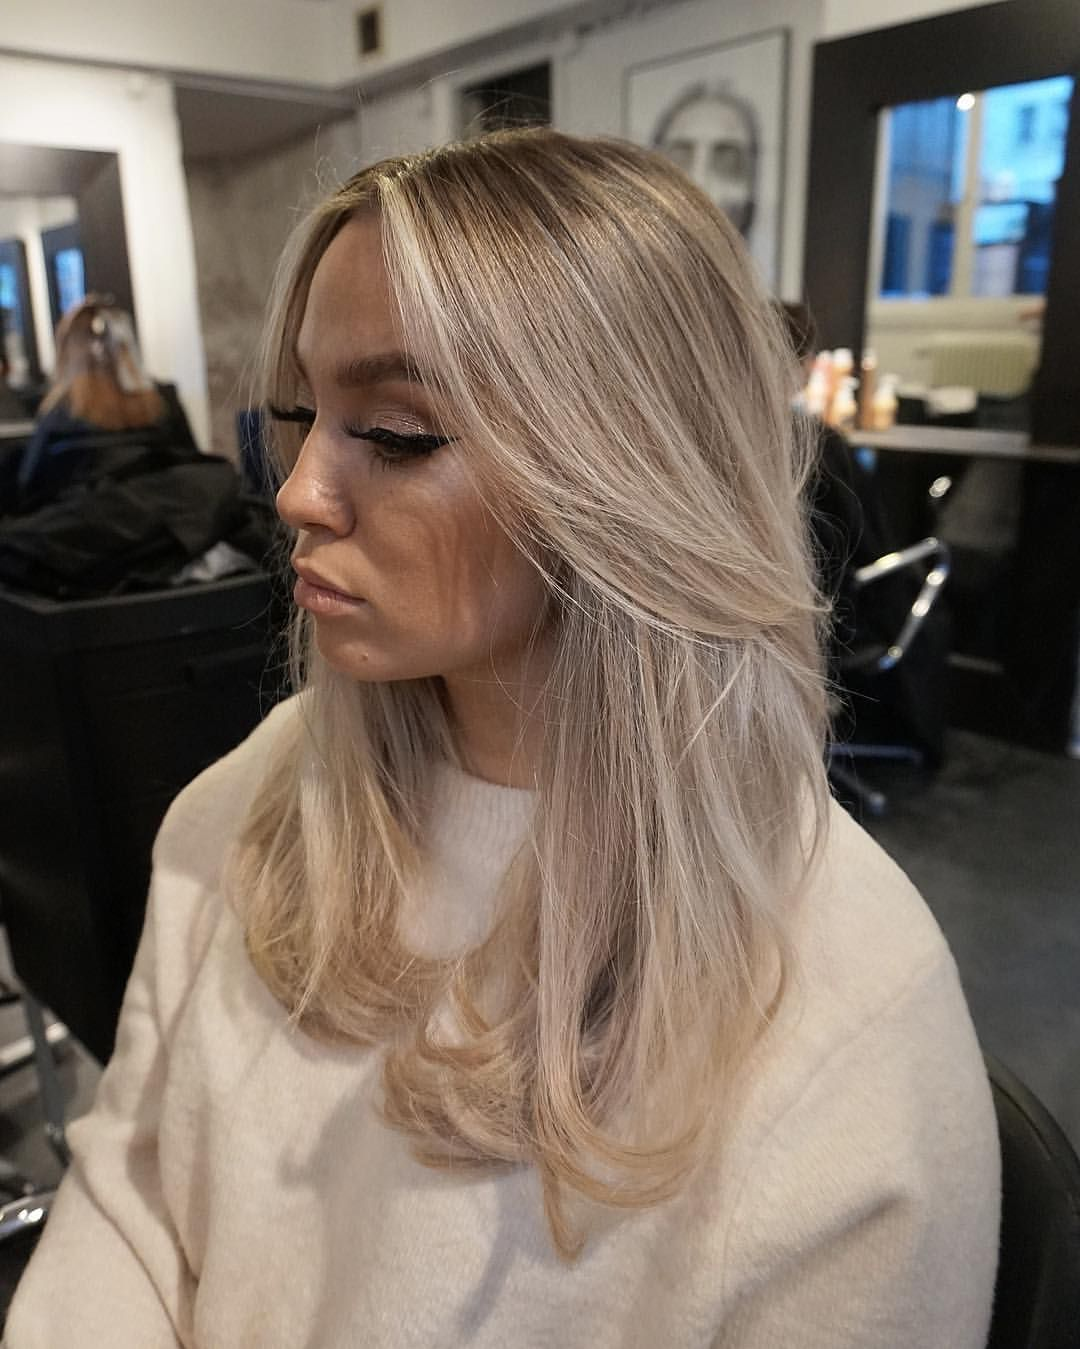 Photo of MIMI HÖGLIN on Instagram: "